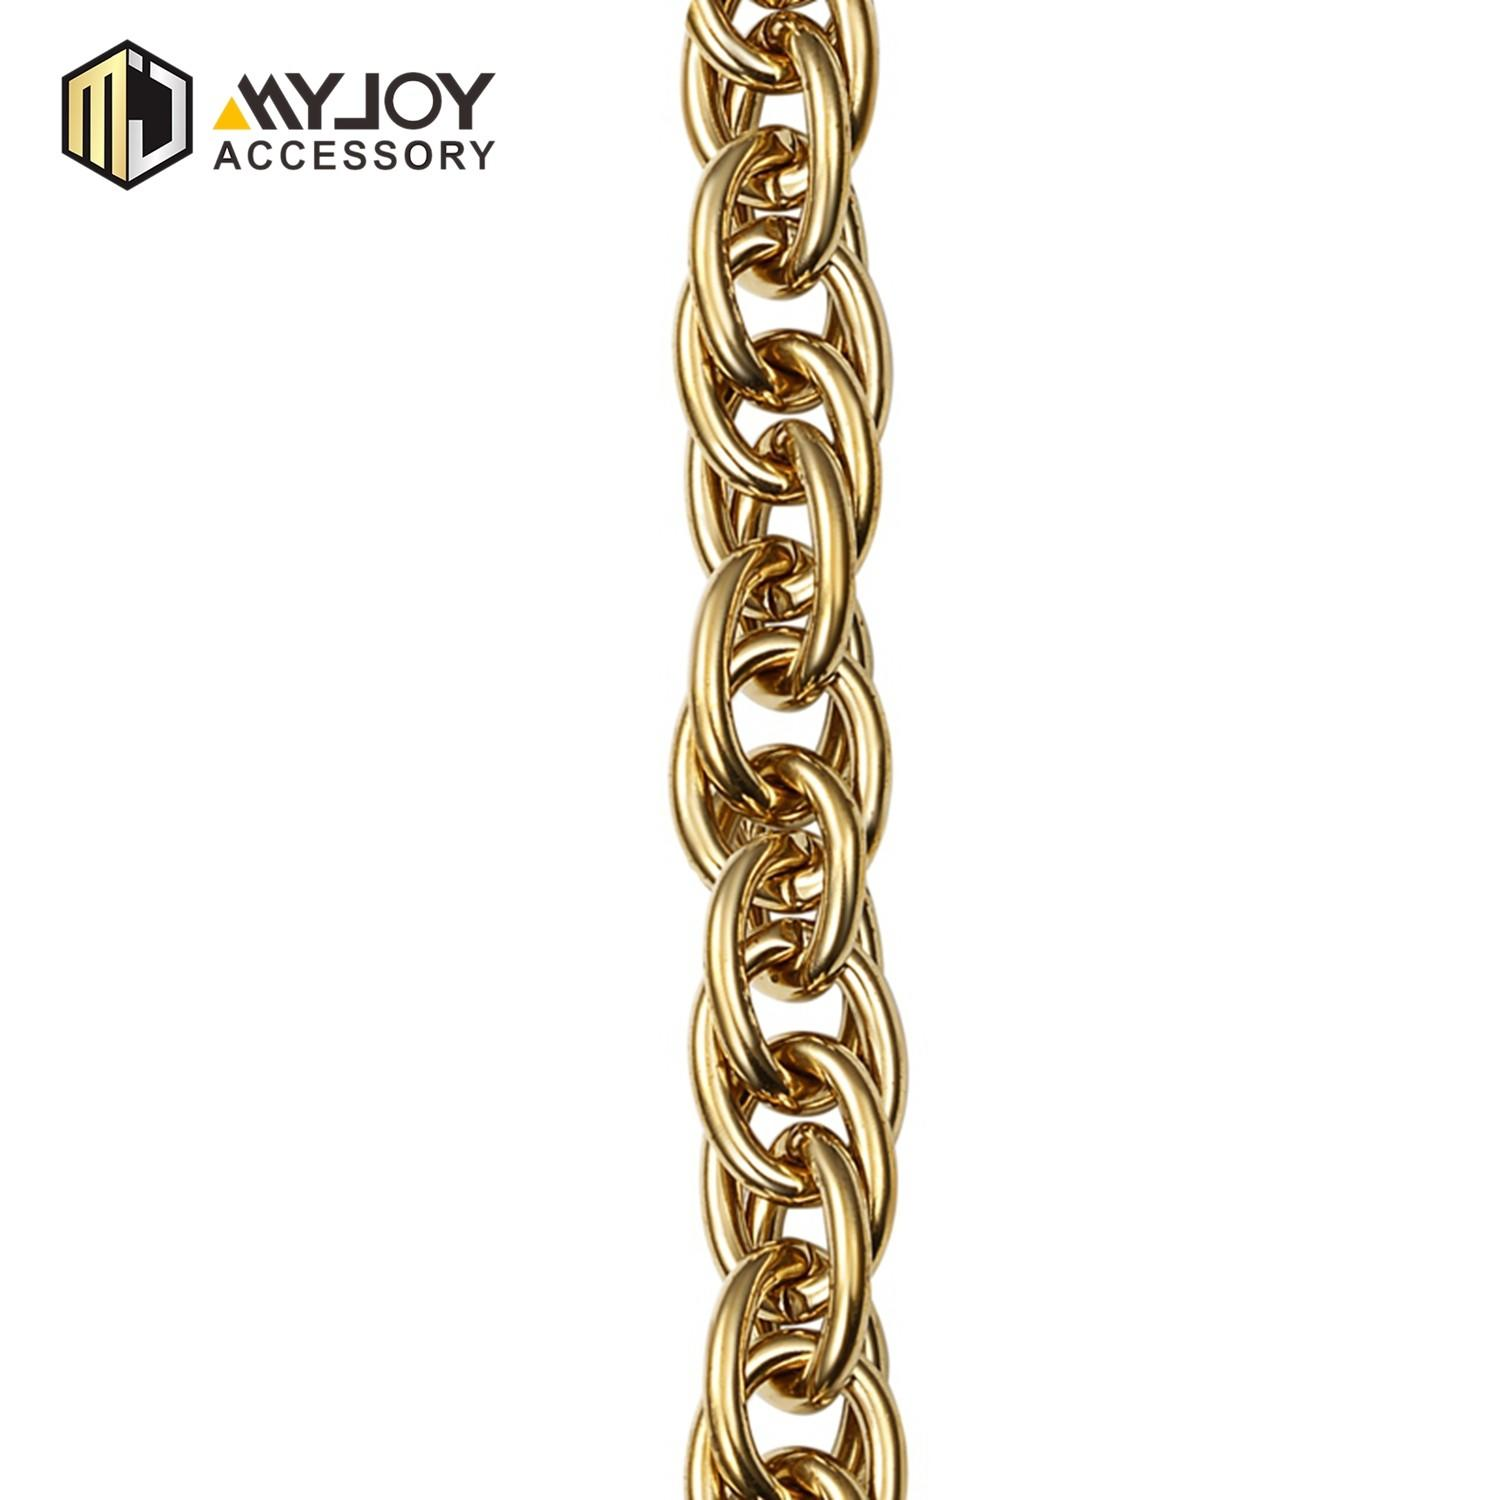 MYJOY Latest handbag strap chain stylish for handbag